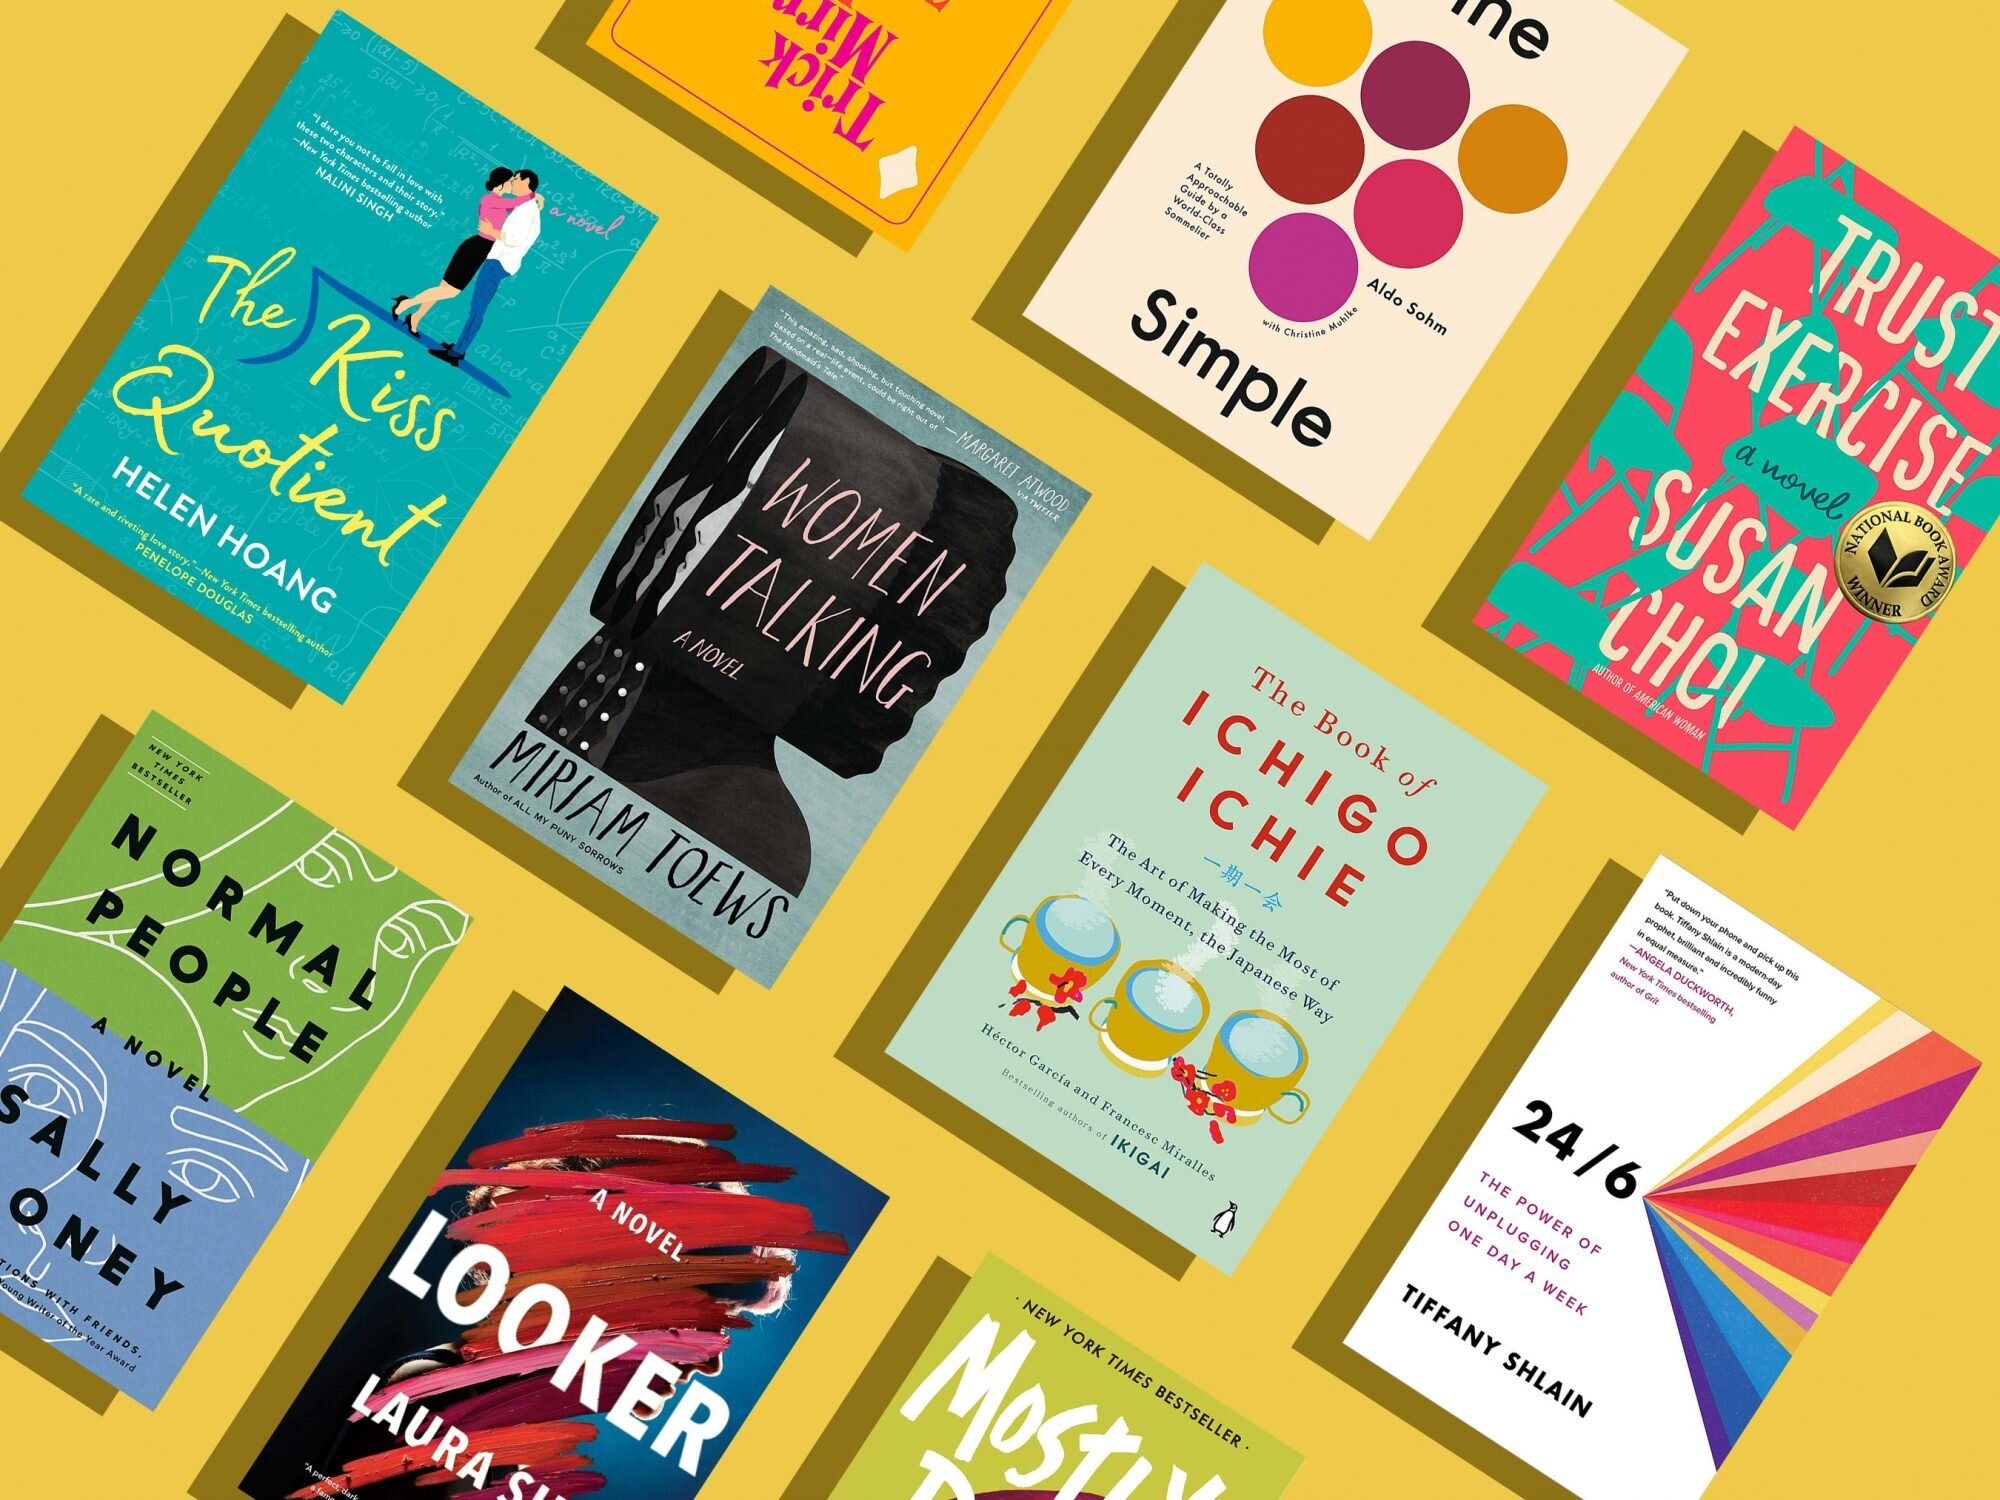 20 Great Books to Read Right Now for Any Mood or Interest   Real ...